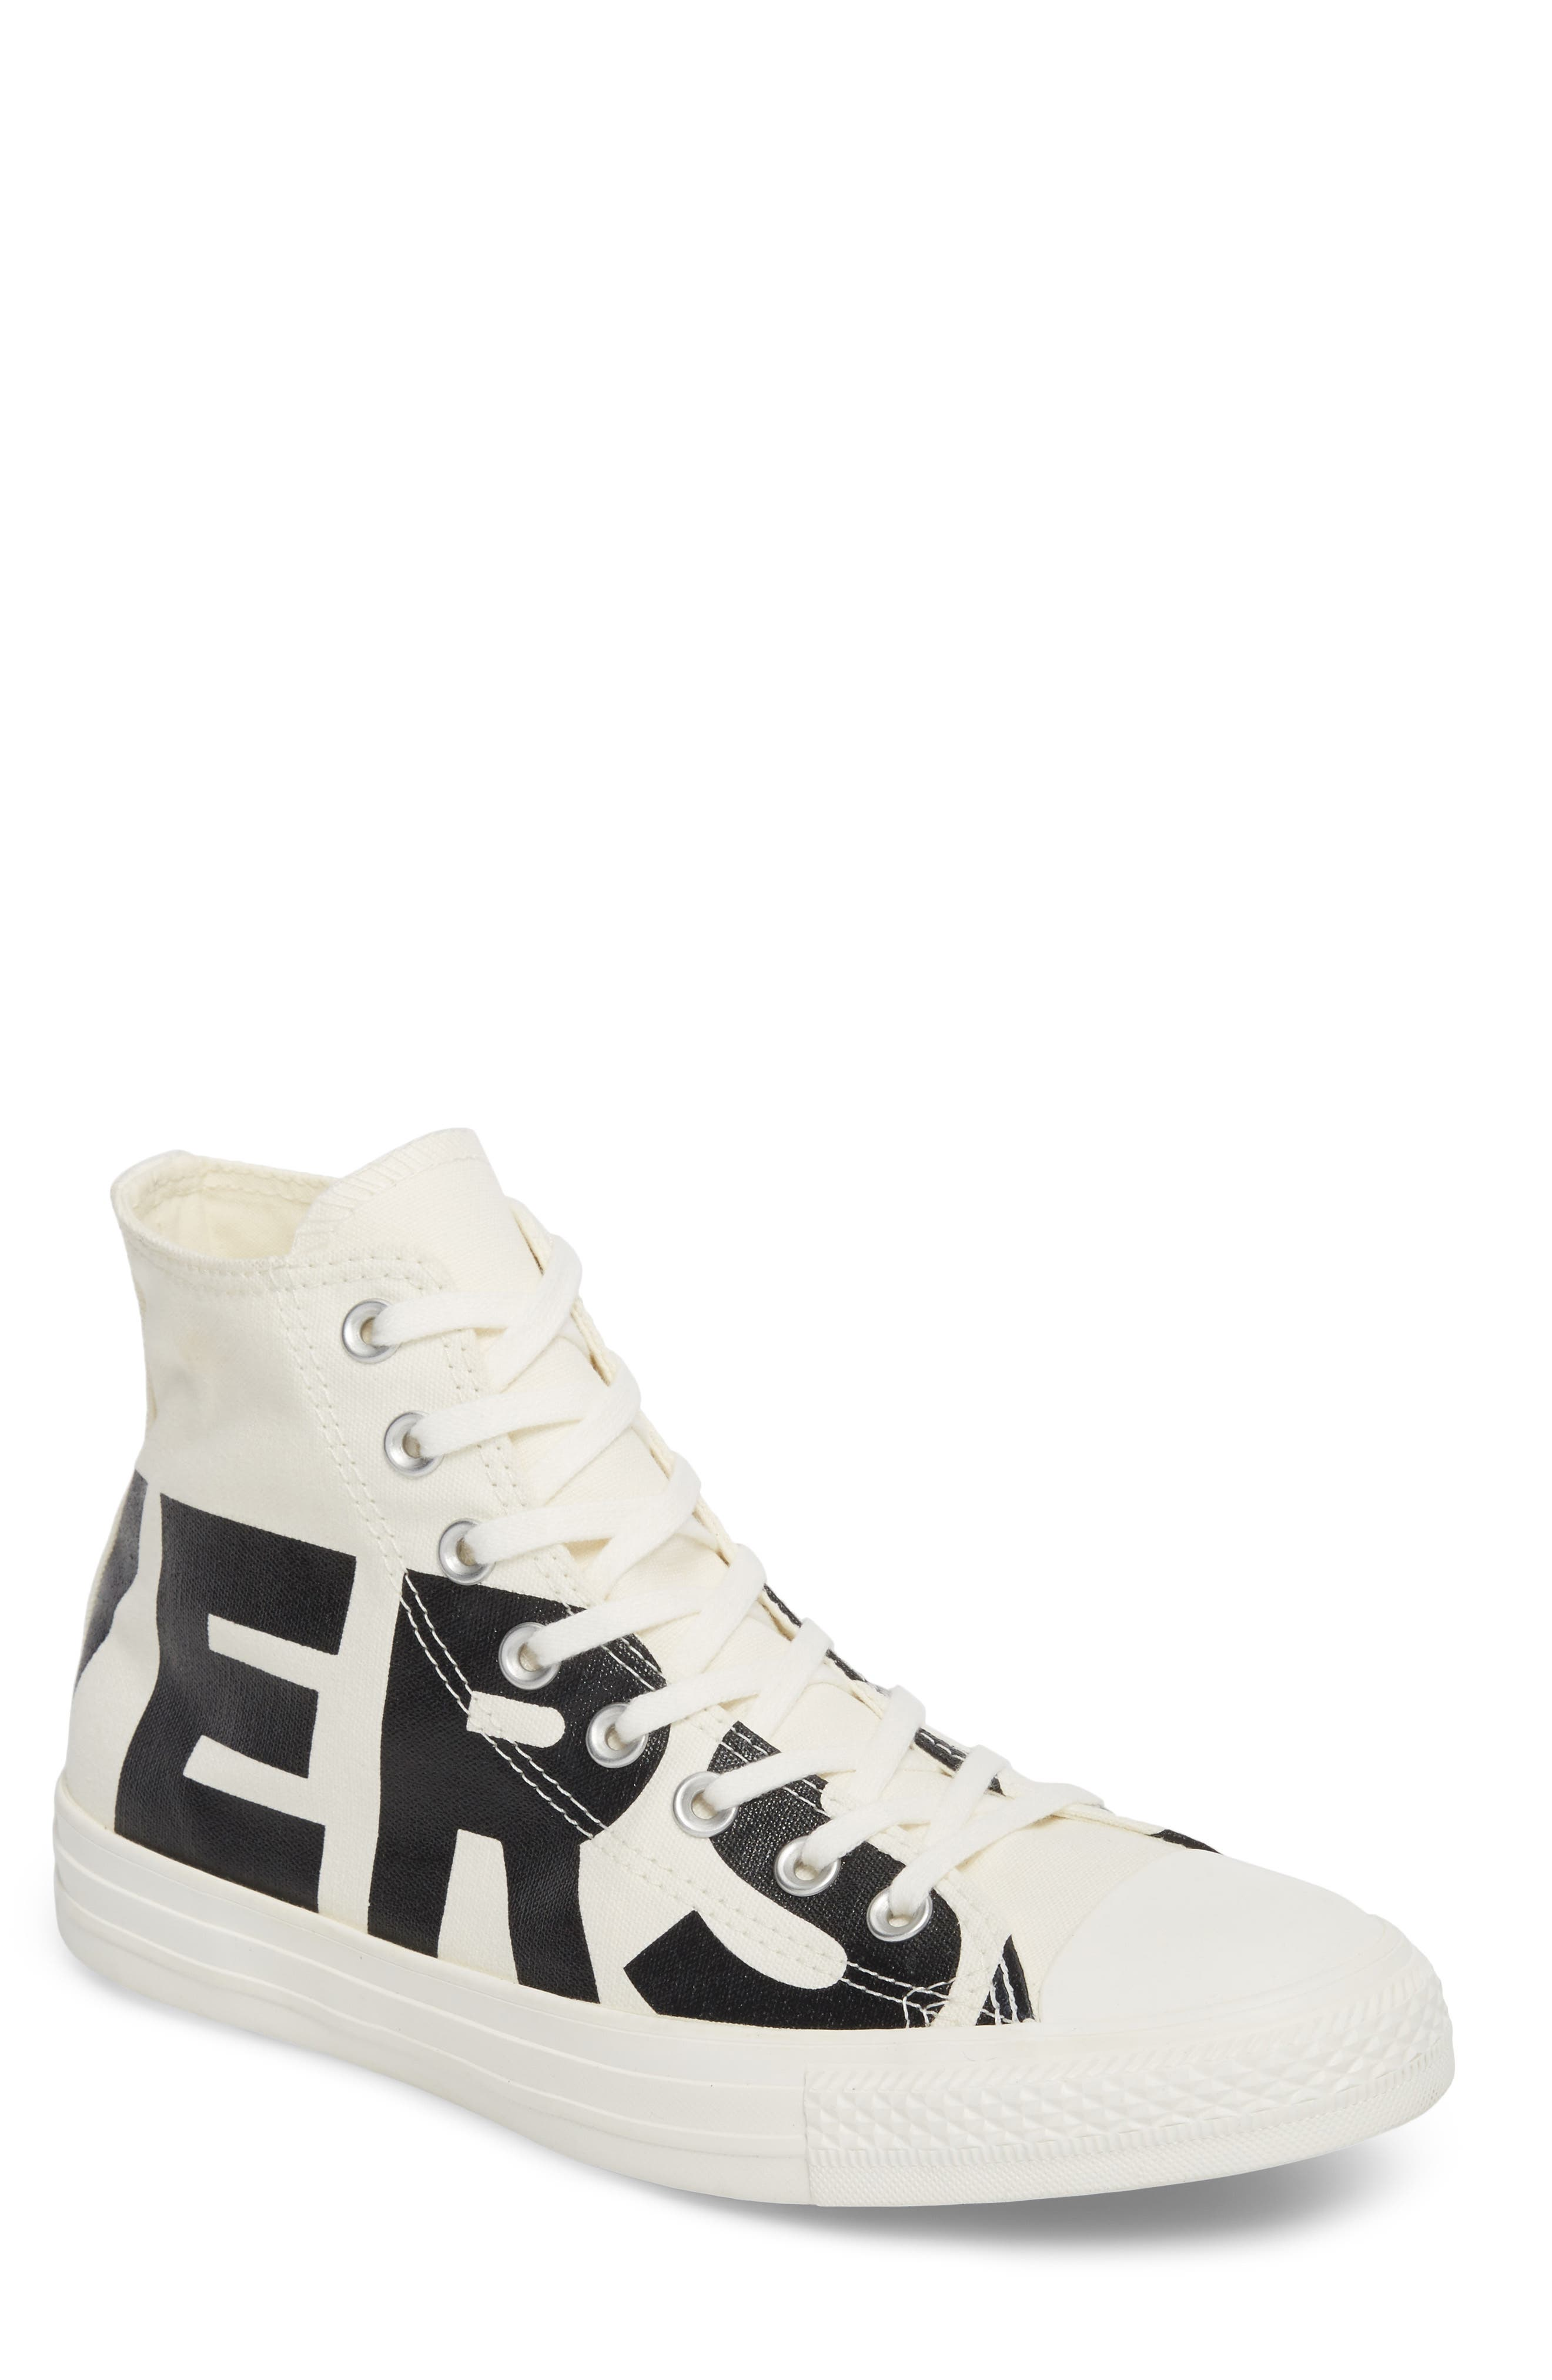 One Star Wordmark High Top Sneaker,                             Main thumbnail 1, color,                             001